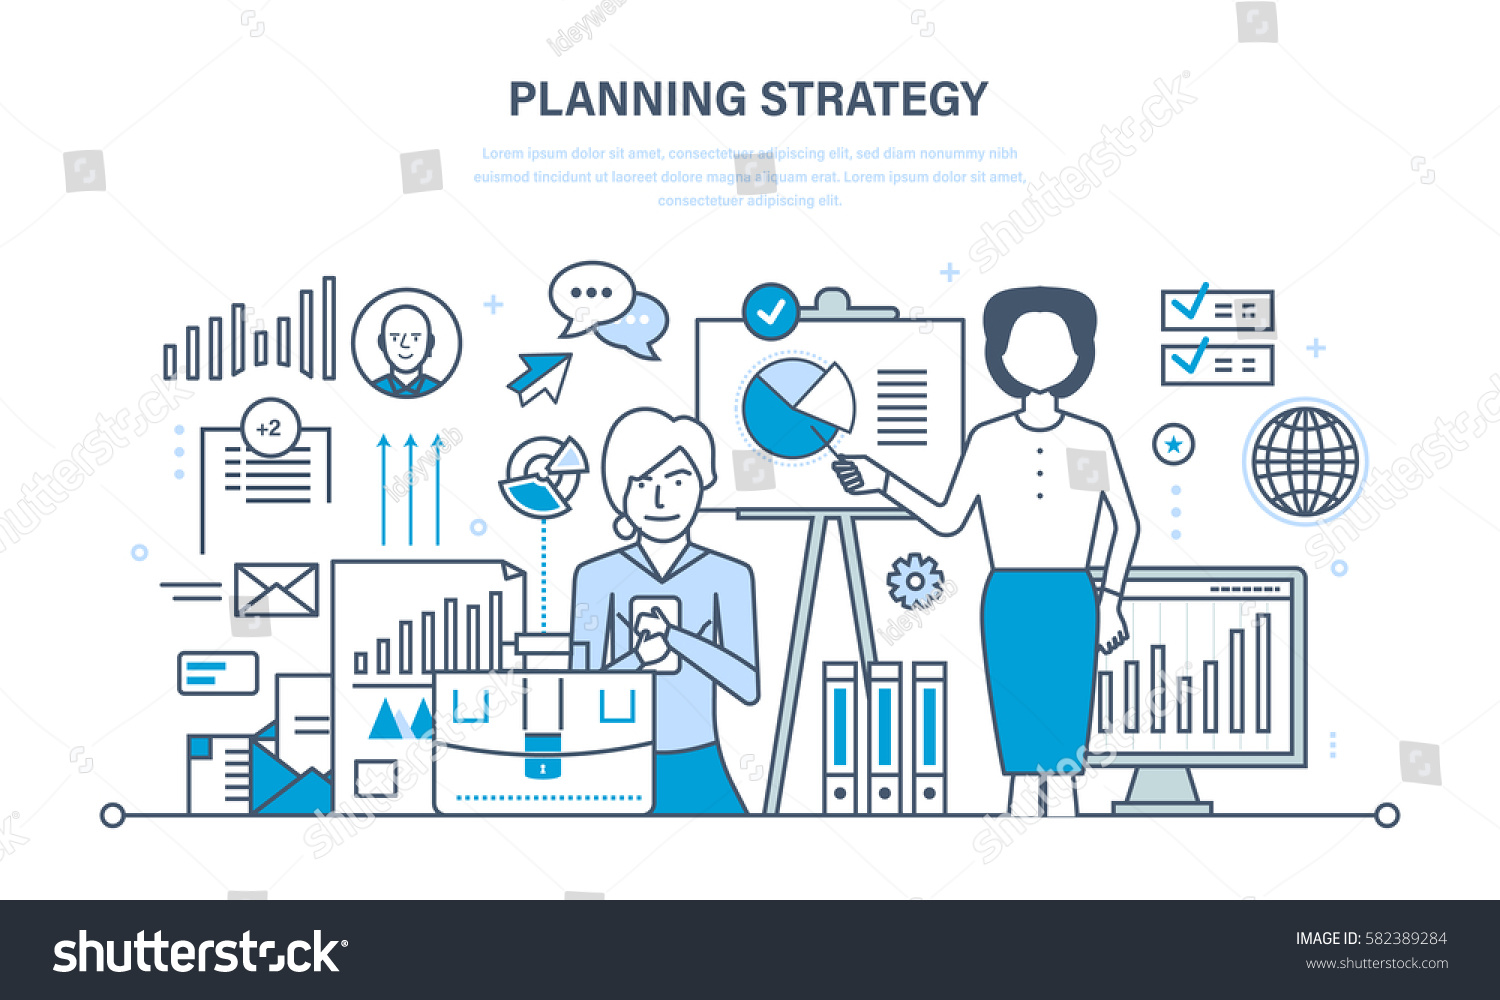 strategies for financial performance analysis Know the different ways to monitor financial performance for your business monitoring of financial performance plays an important role in ensuring that strategic decisions are taken on a timely basis and the growth plan of the business is adhered to.